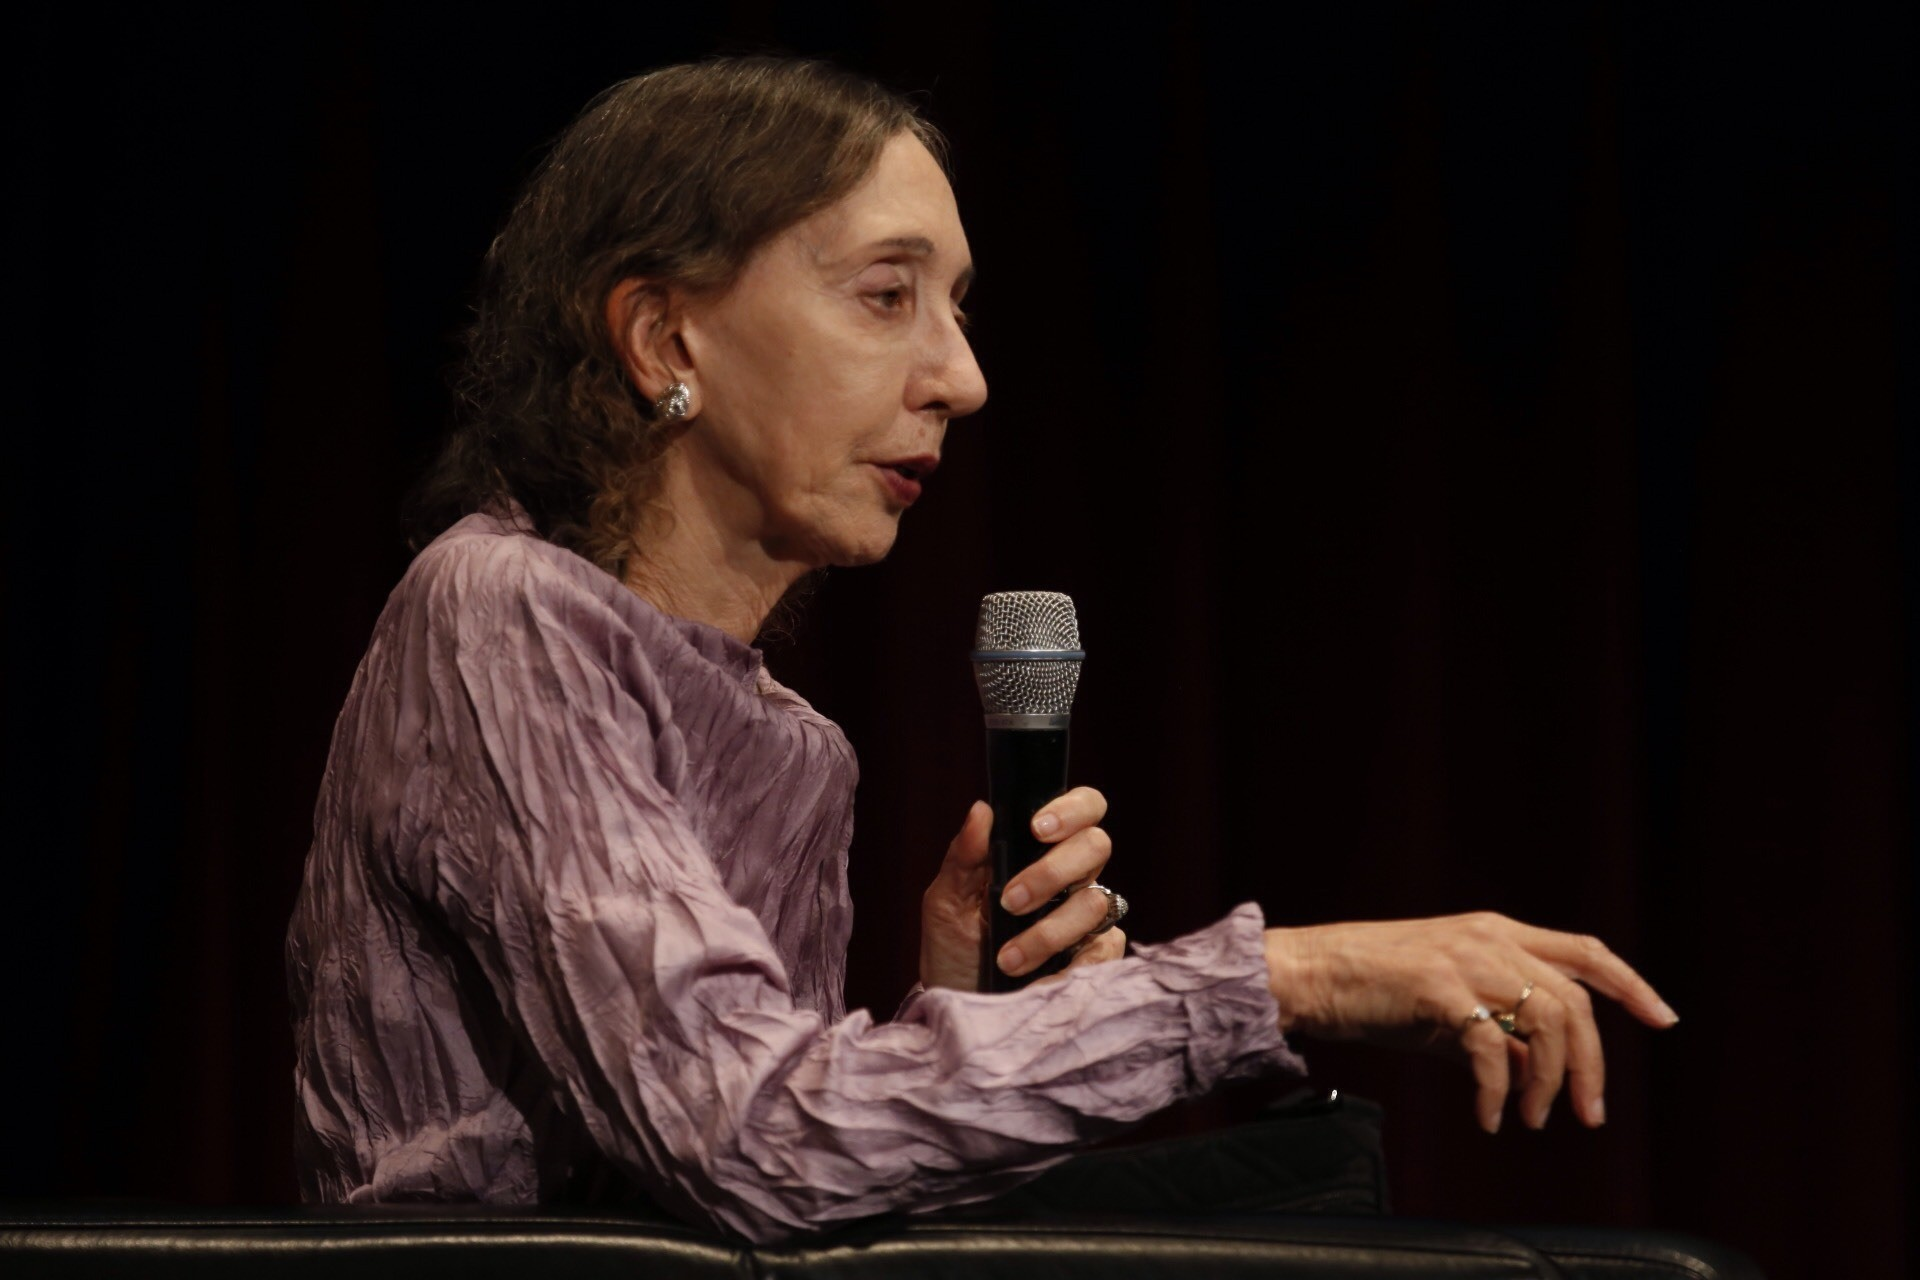 Festival of Books: Why Joyce Carol Oates thinks 14 is the perfect age